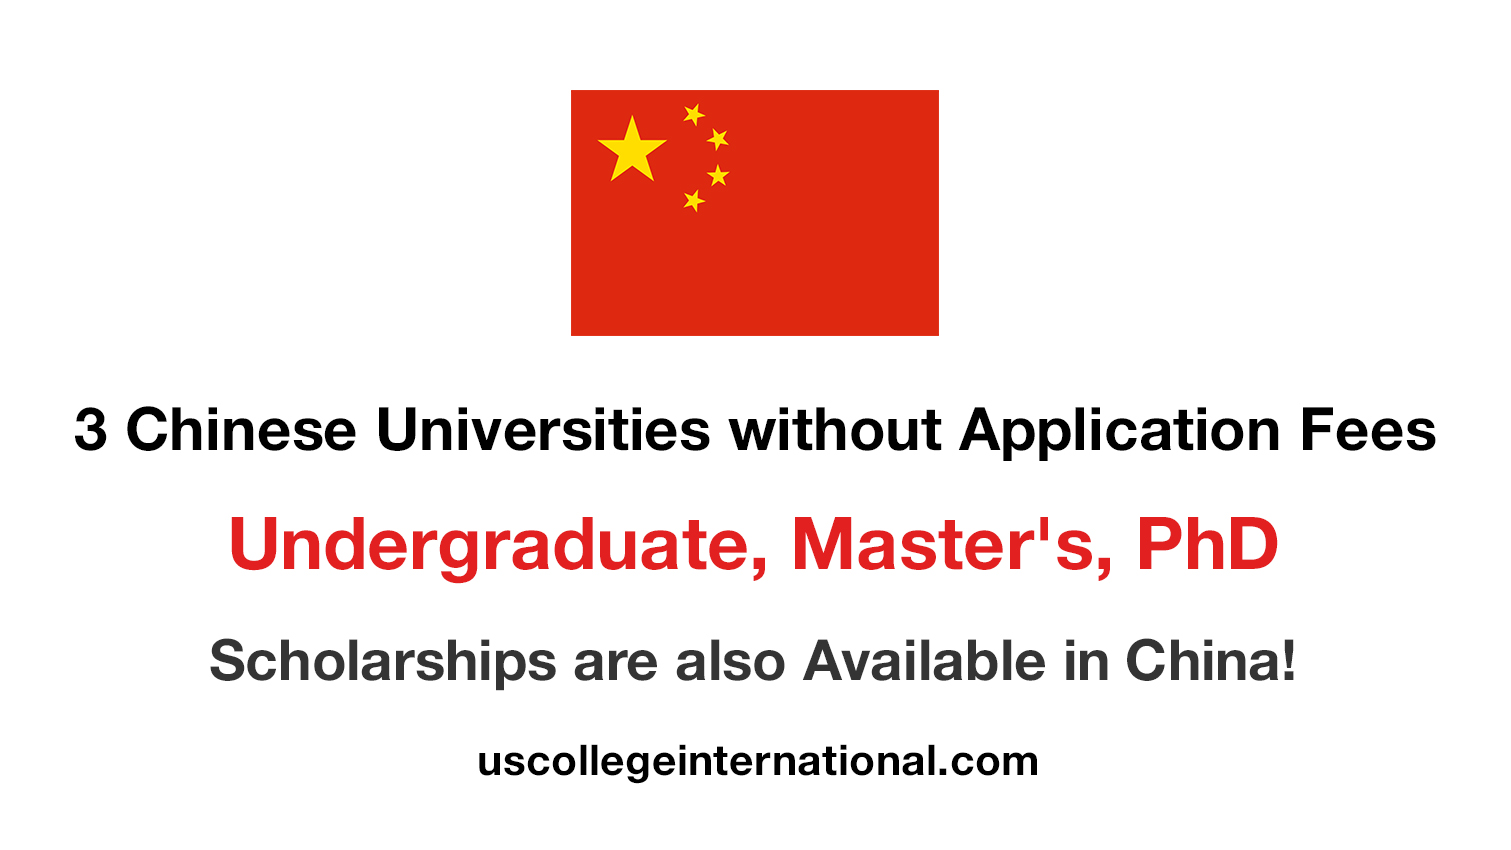 Chinese Universities without Application Fees